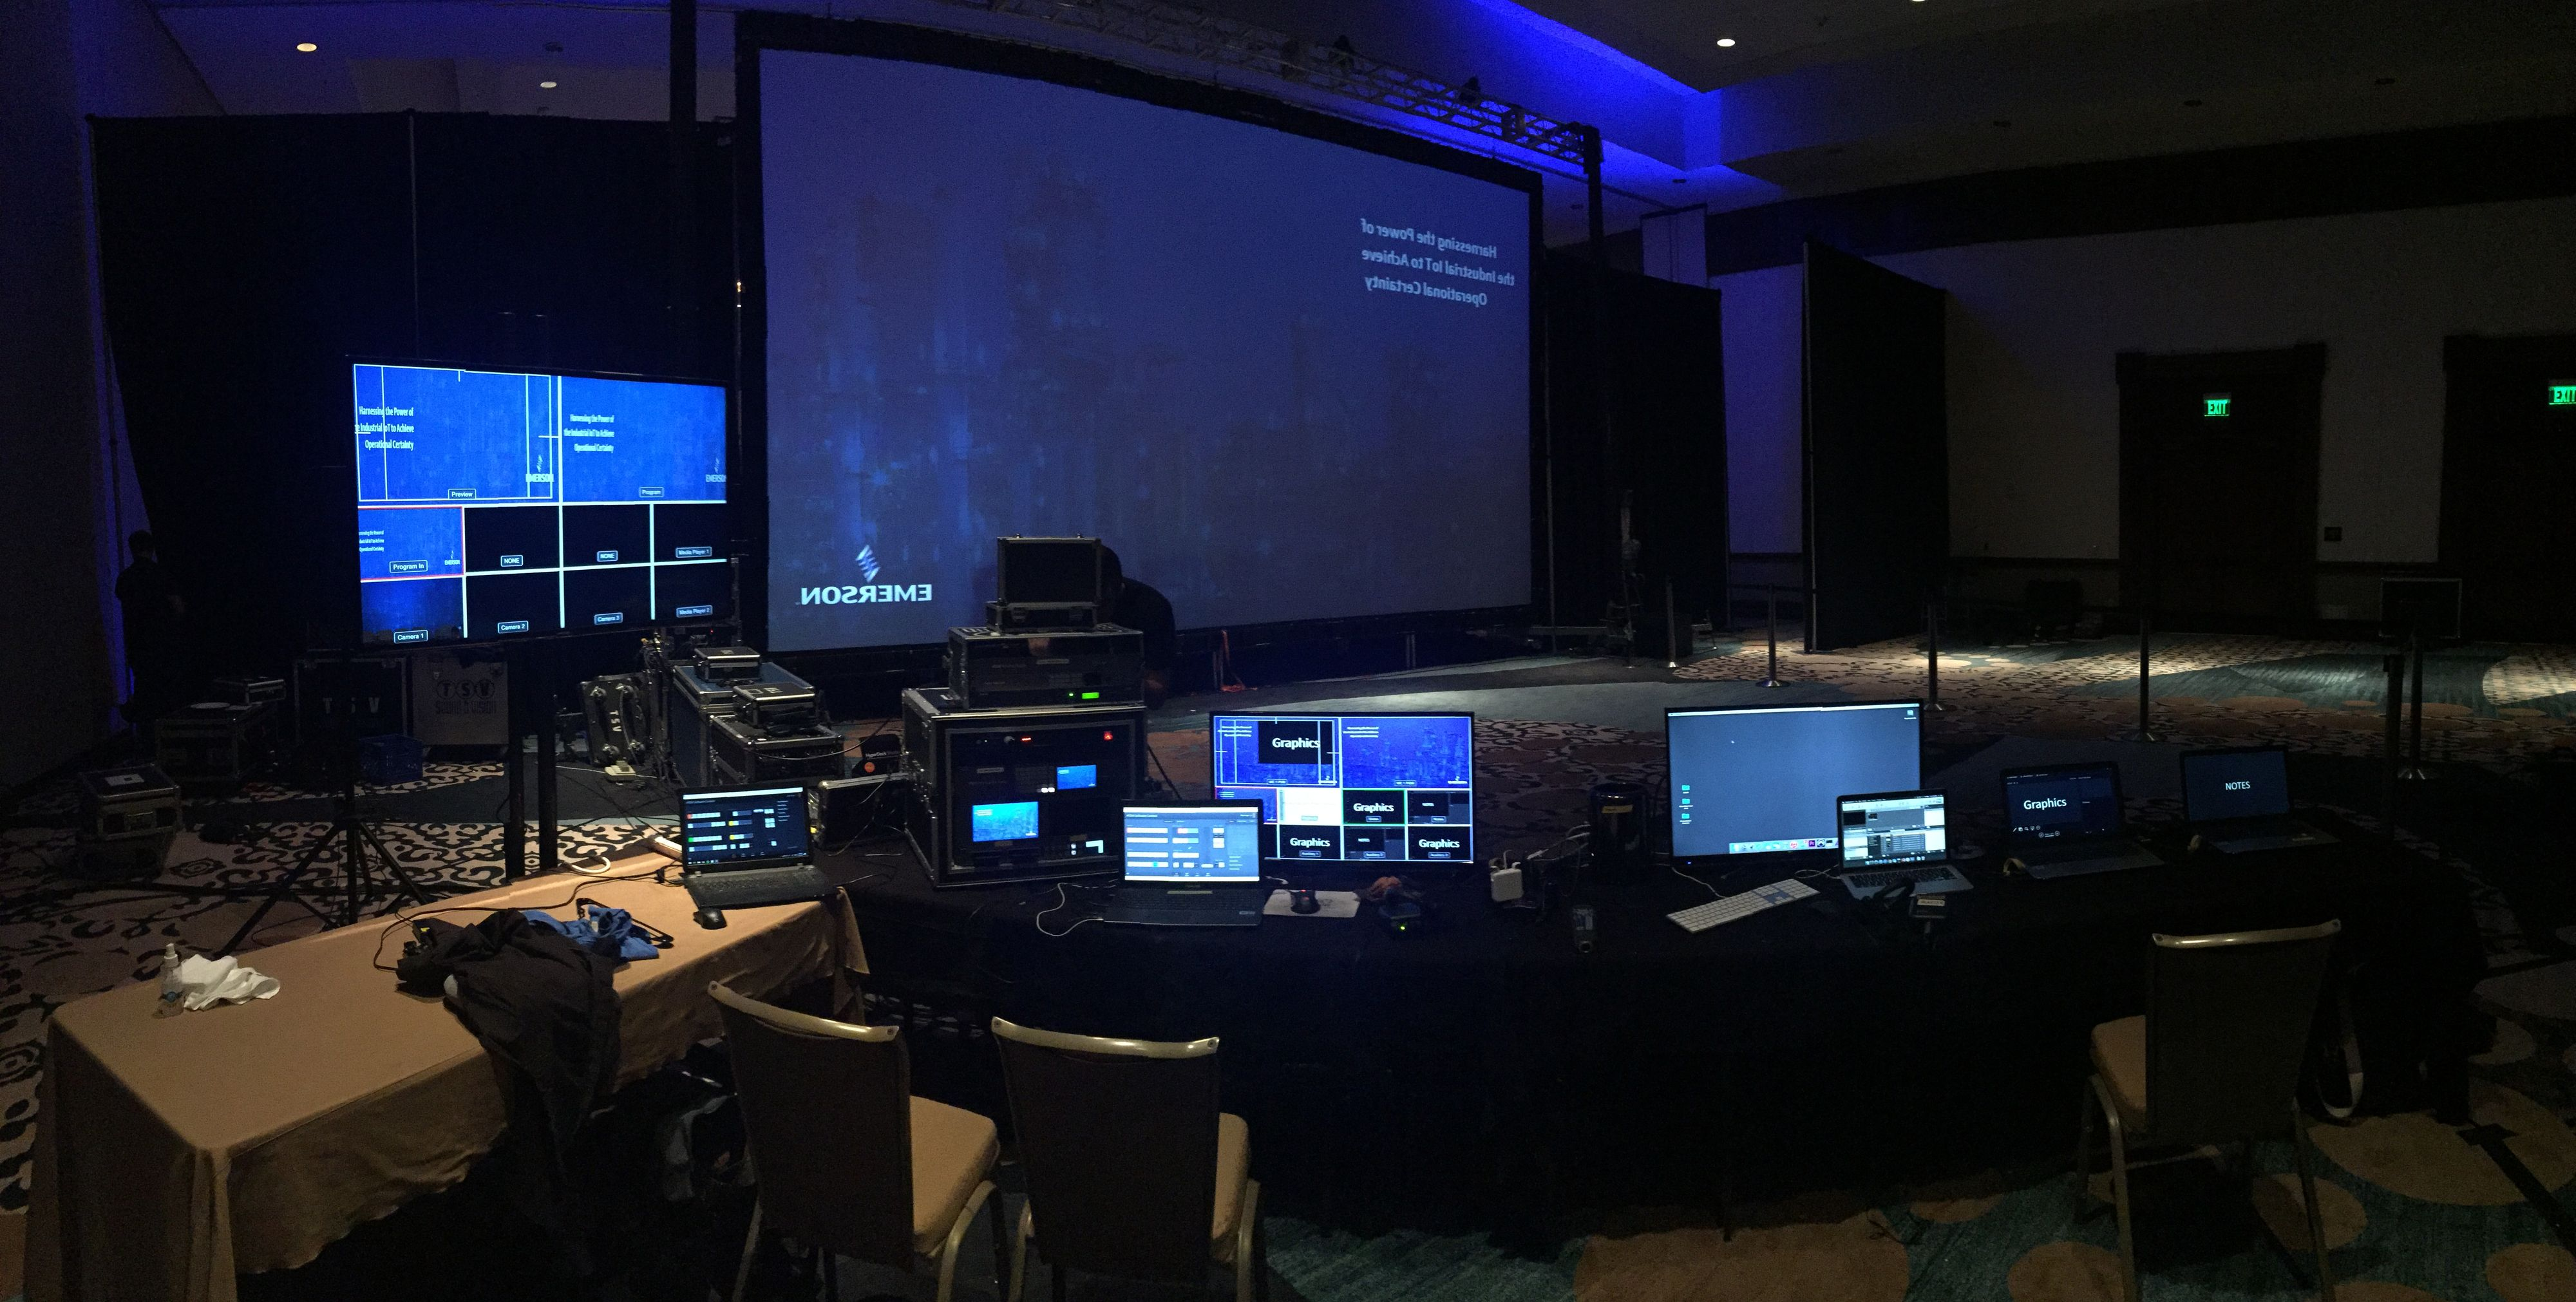 Video Village at an Emerson Event